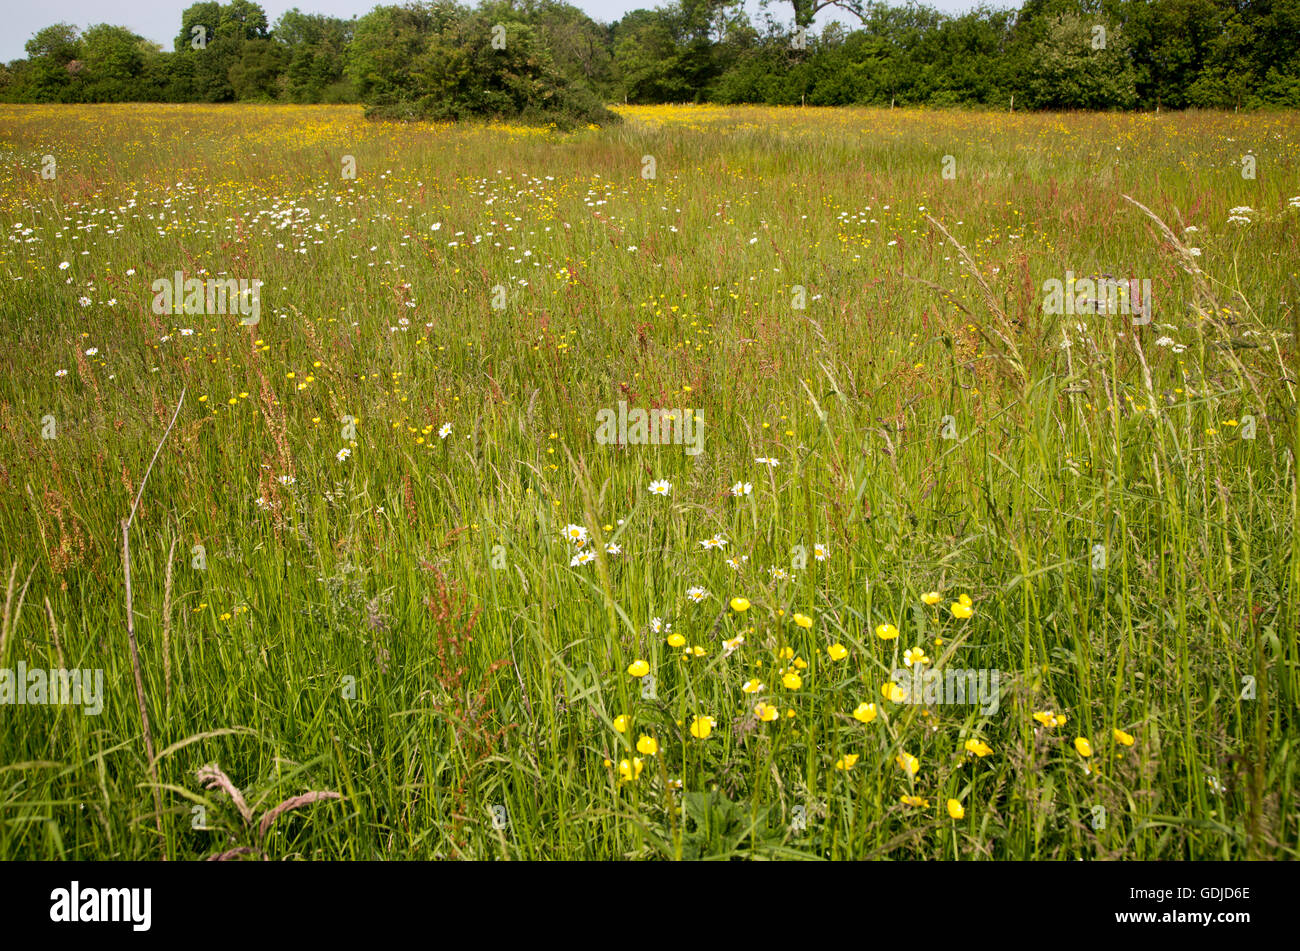 Wildflowers on Mellis Common the largest area of unfenced Medieval common land in England, Mellis, Suffolk, England, Stock Photo